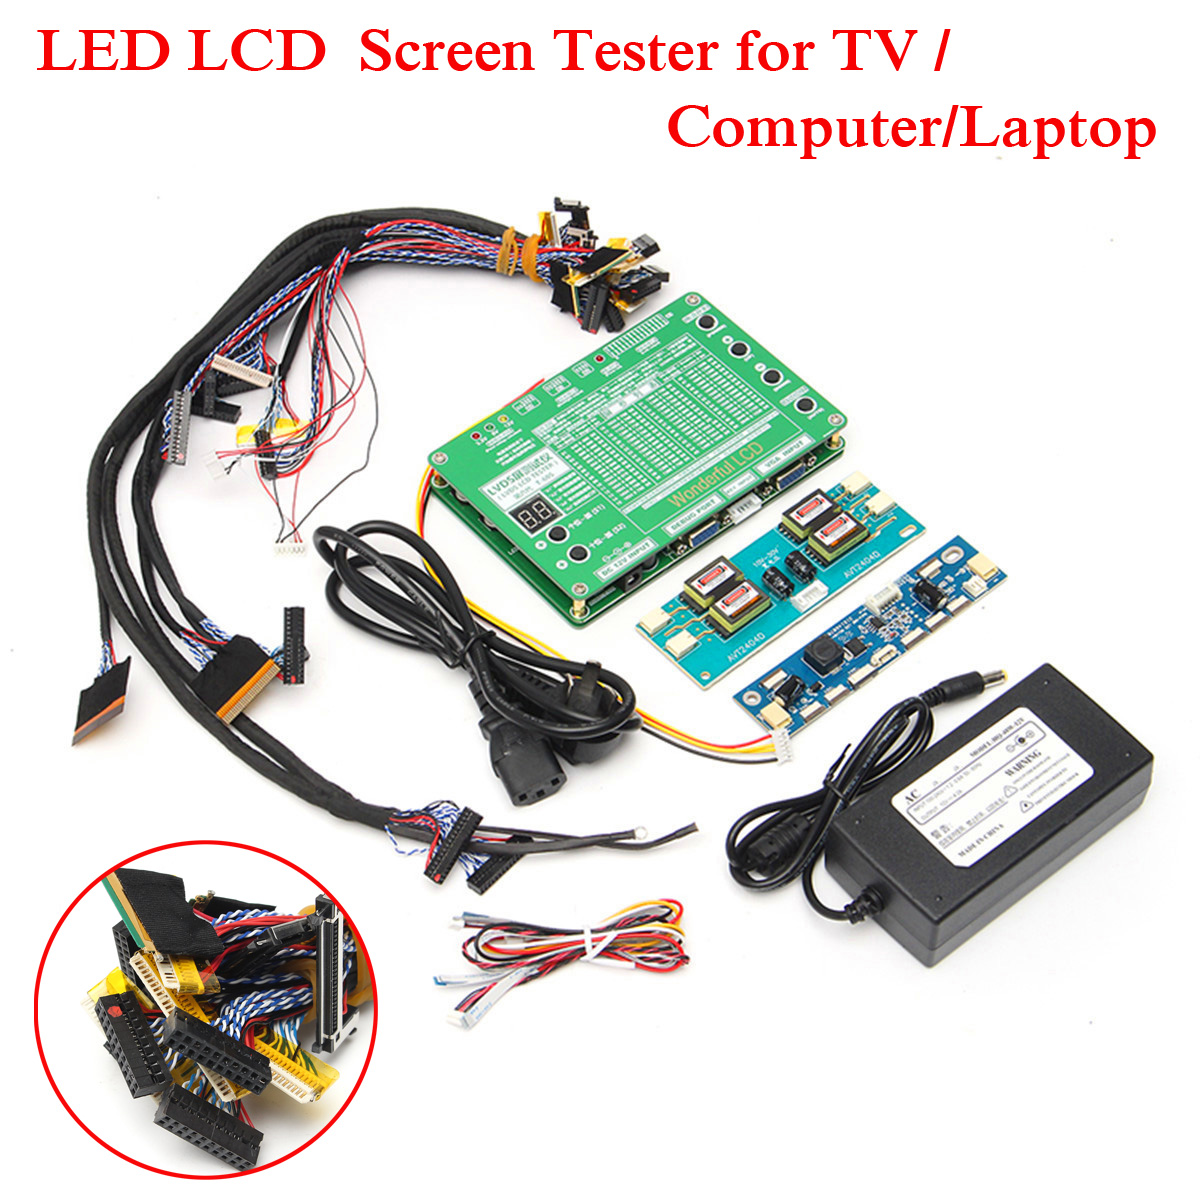 New Panel Test Tool Laptop LCD LED Test Tool Kit Panel Screen Tester  14PCS Lvds Cables   Inverter for TV Computer Laptop Repair